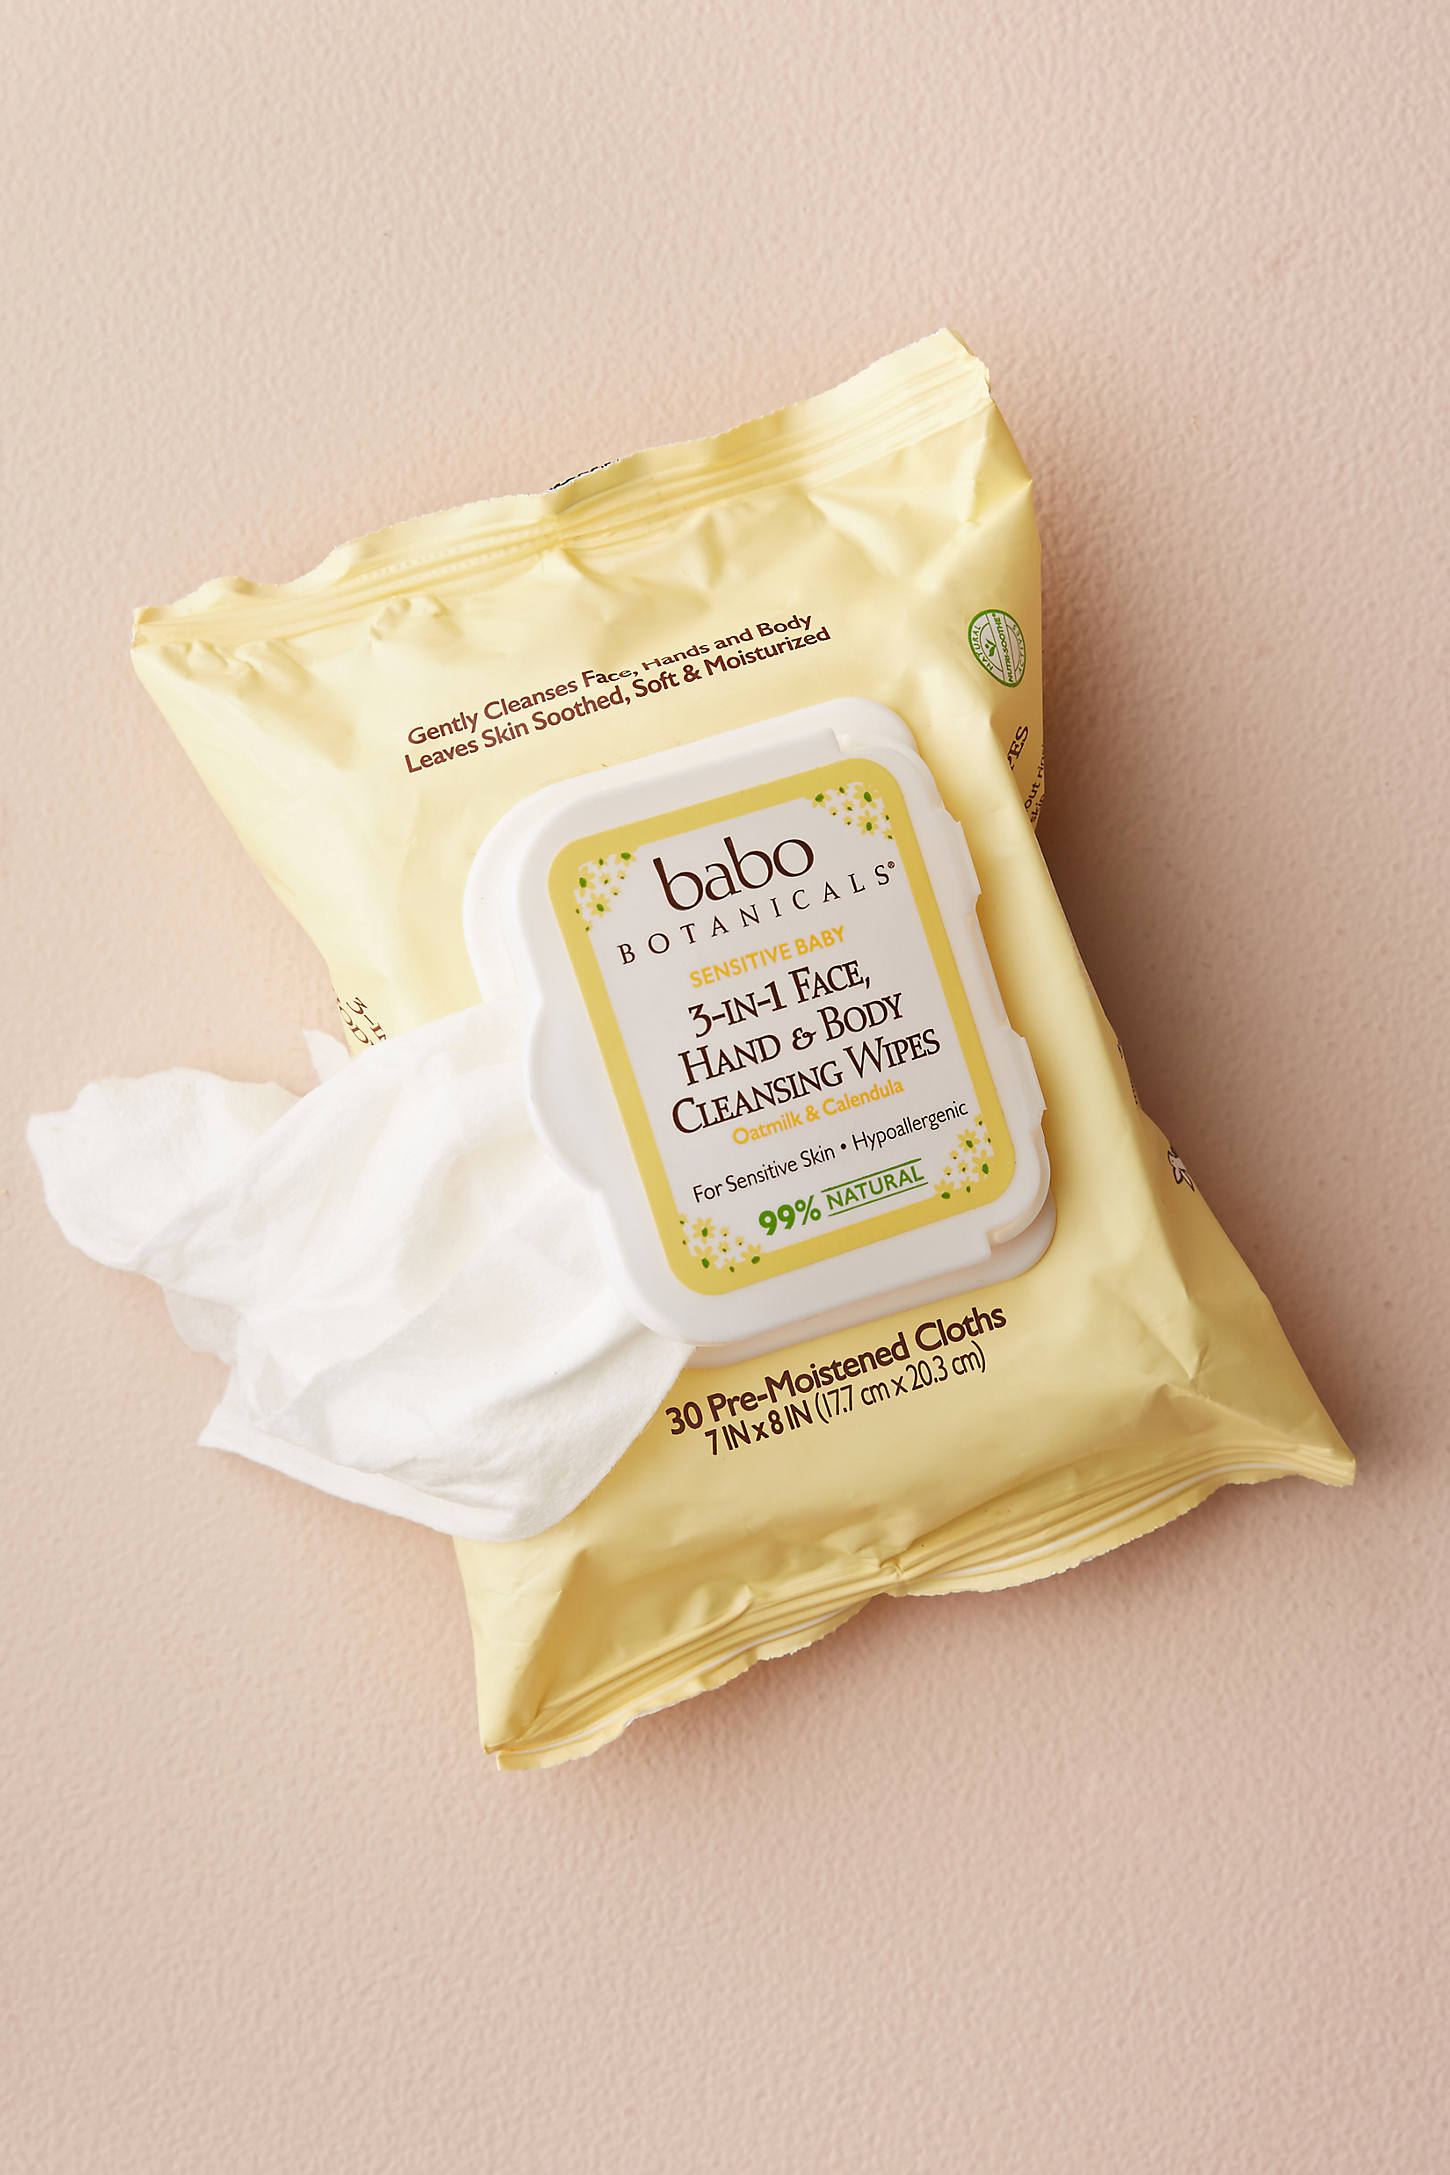 Babo Botanicals 3-In-1 Face, Hands & Body Cleansing Wipes